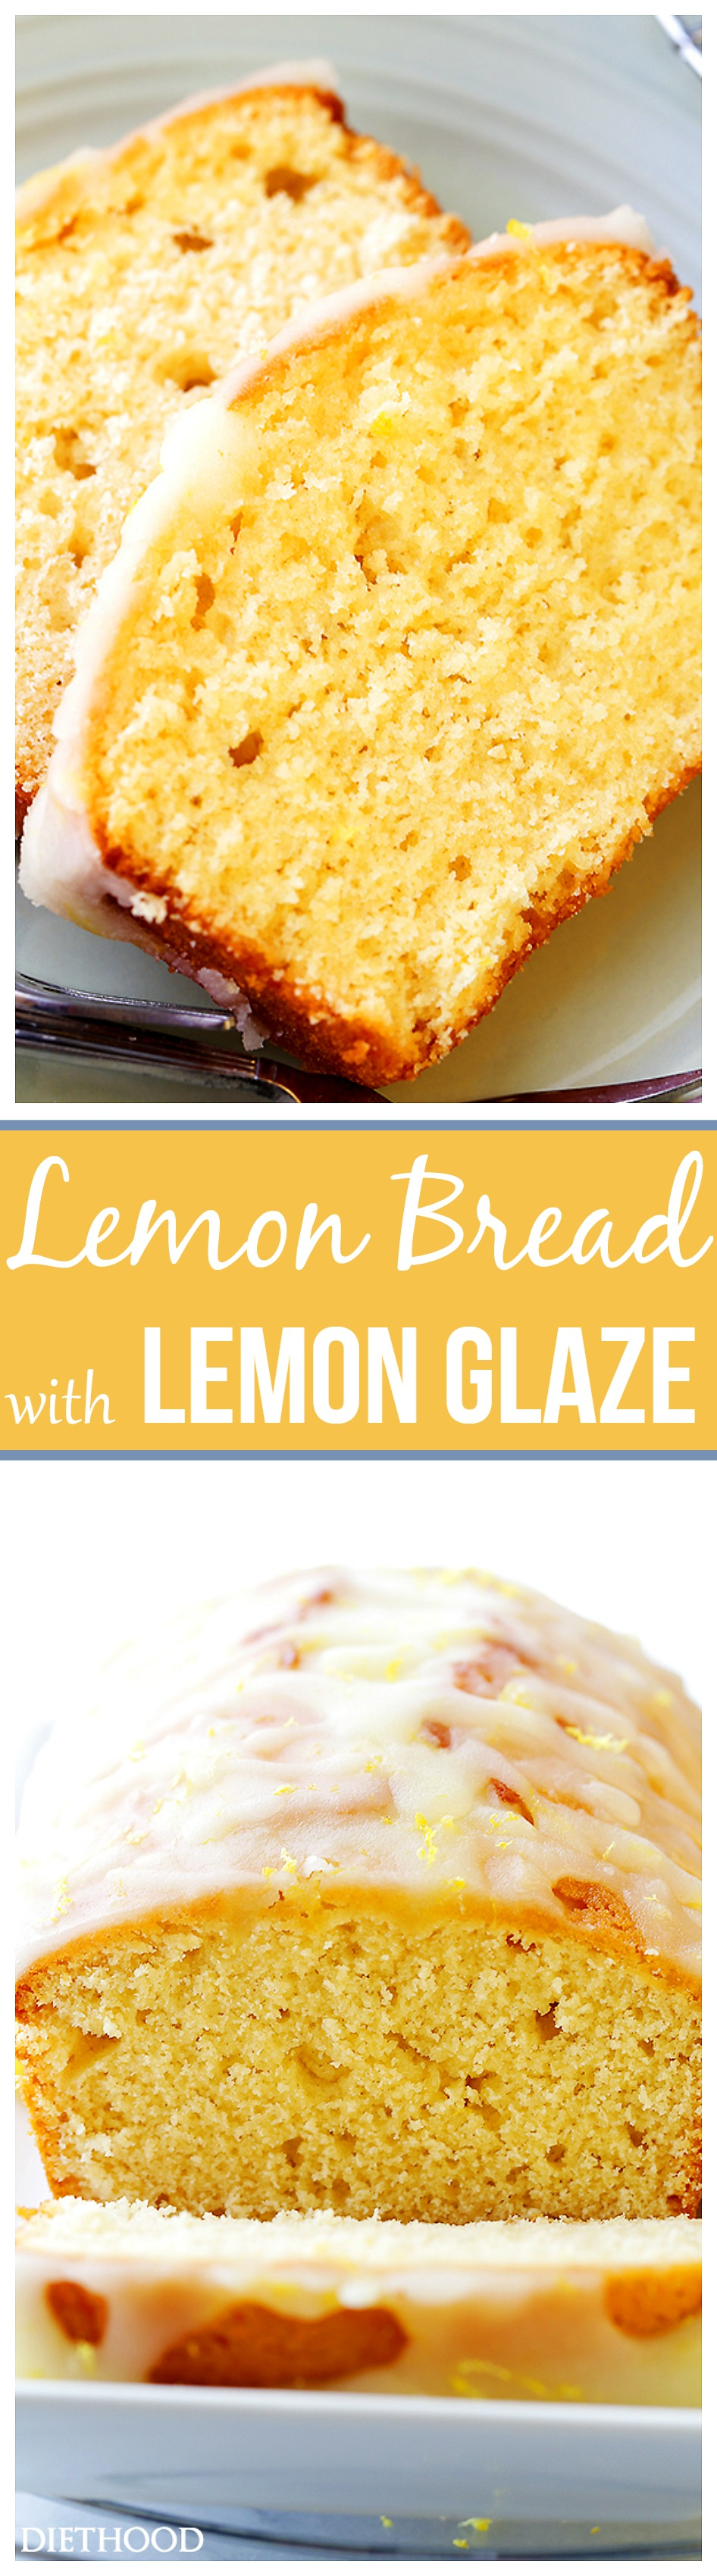 Lemon Bread Recipe - Packed with lemon flavor, this easy to make quick bread is sweet, crumbly, citrusy, lightened-up, and incredibly flavorful! The Lemon Glaze takes it over the top!